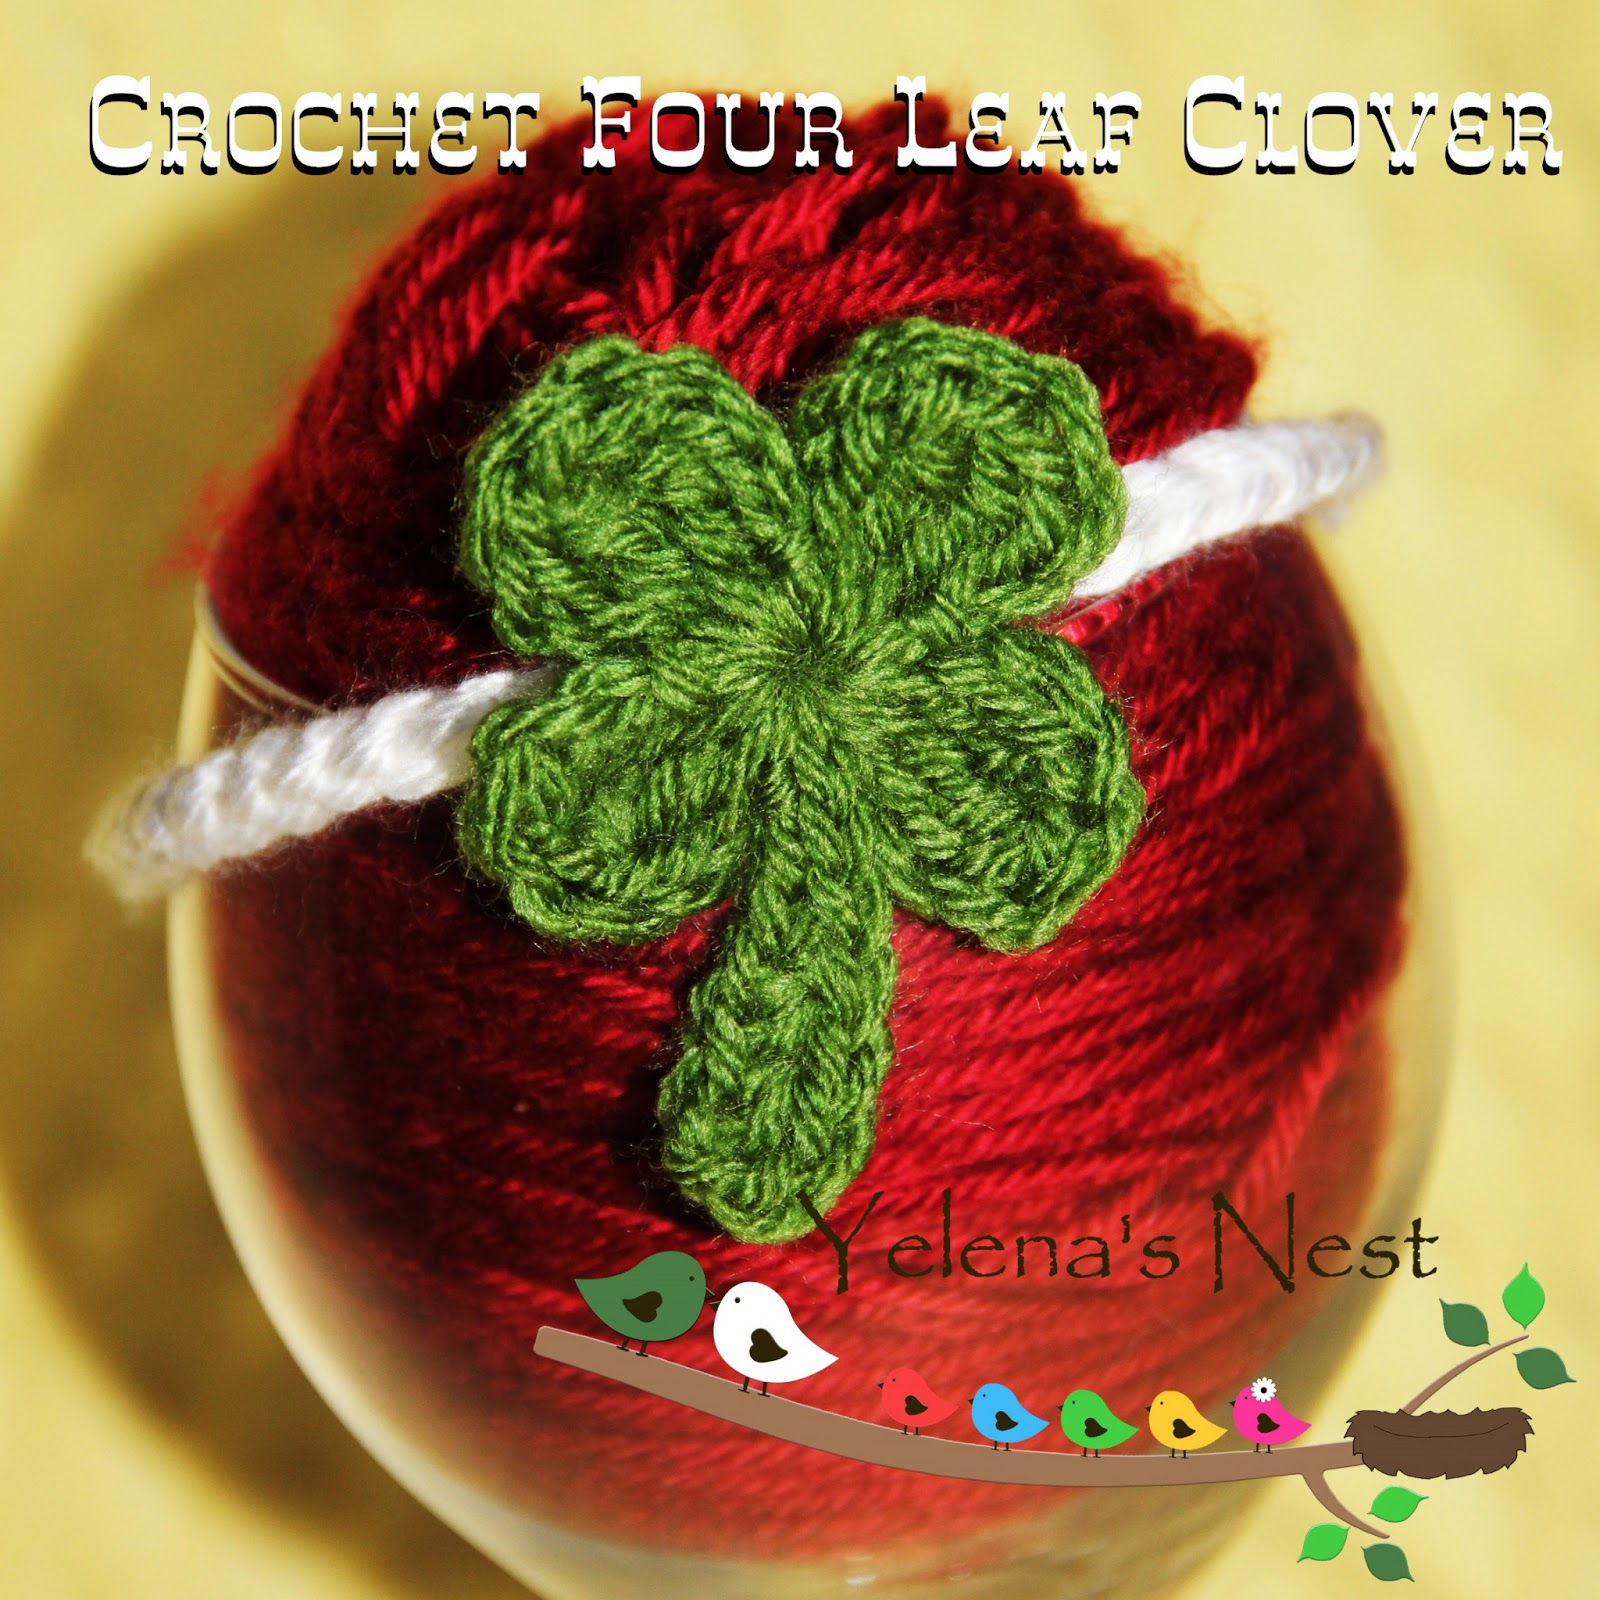 Free Crochet Patterns Four Leaf Clover : Yelenas Nest: Four Leaf Clover {Free Crochet Pattern}